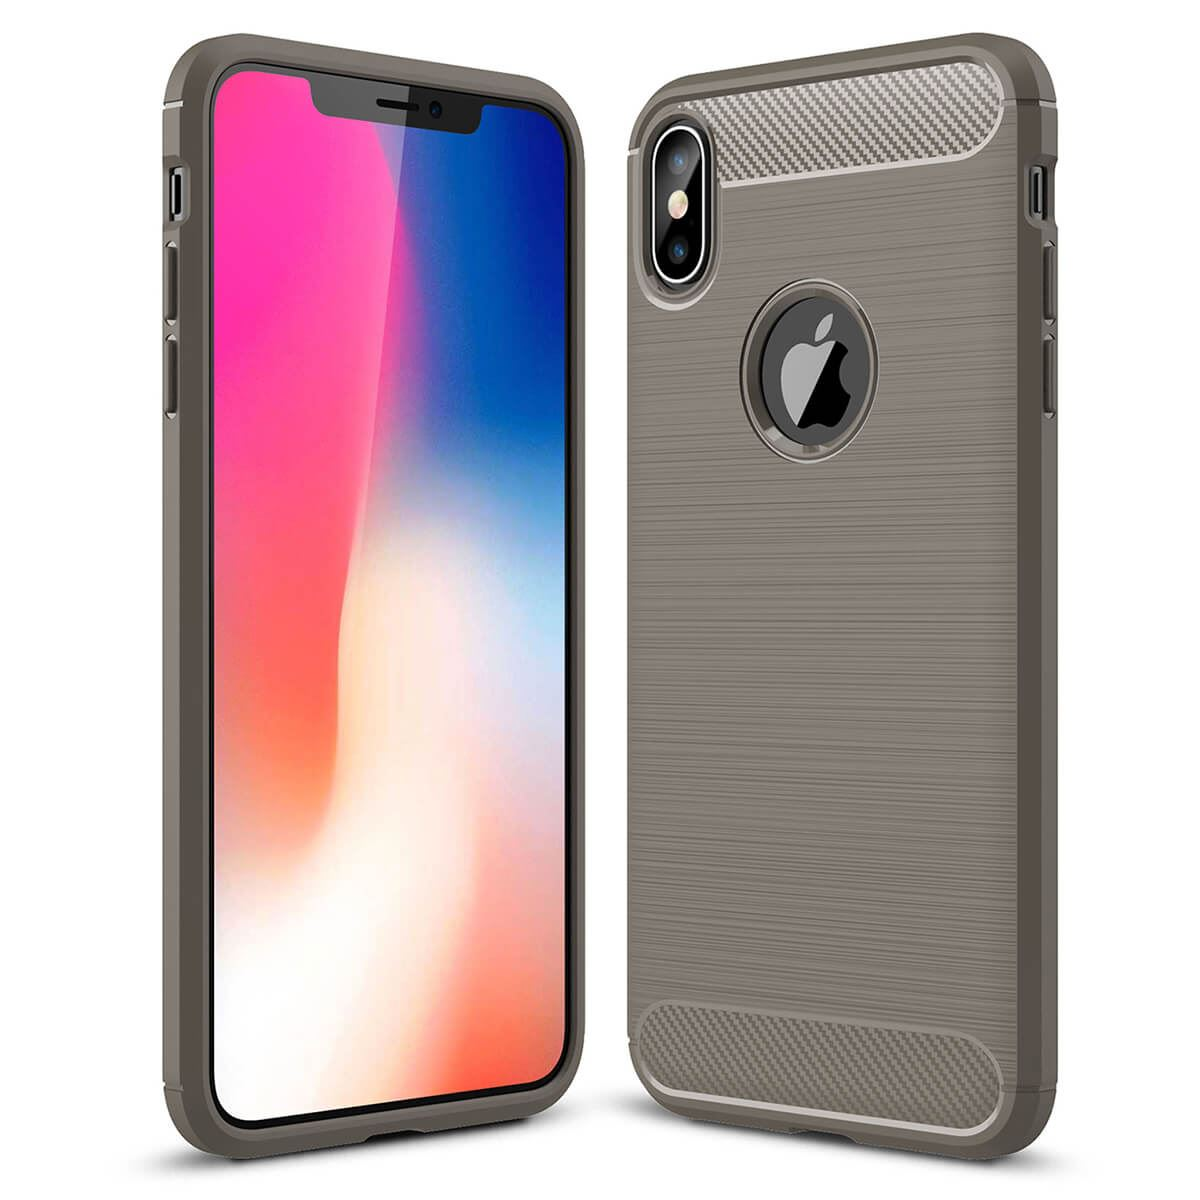 Shockproof-Bumper-Case-Apple-iPhone-10-X-8-7-6s-Se-5s-5-Luxury-Ultra-Slim-Cover thumbnail 8